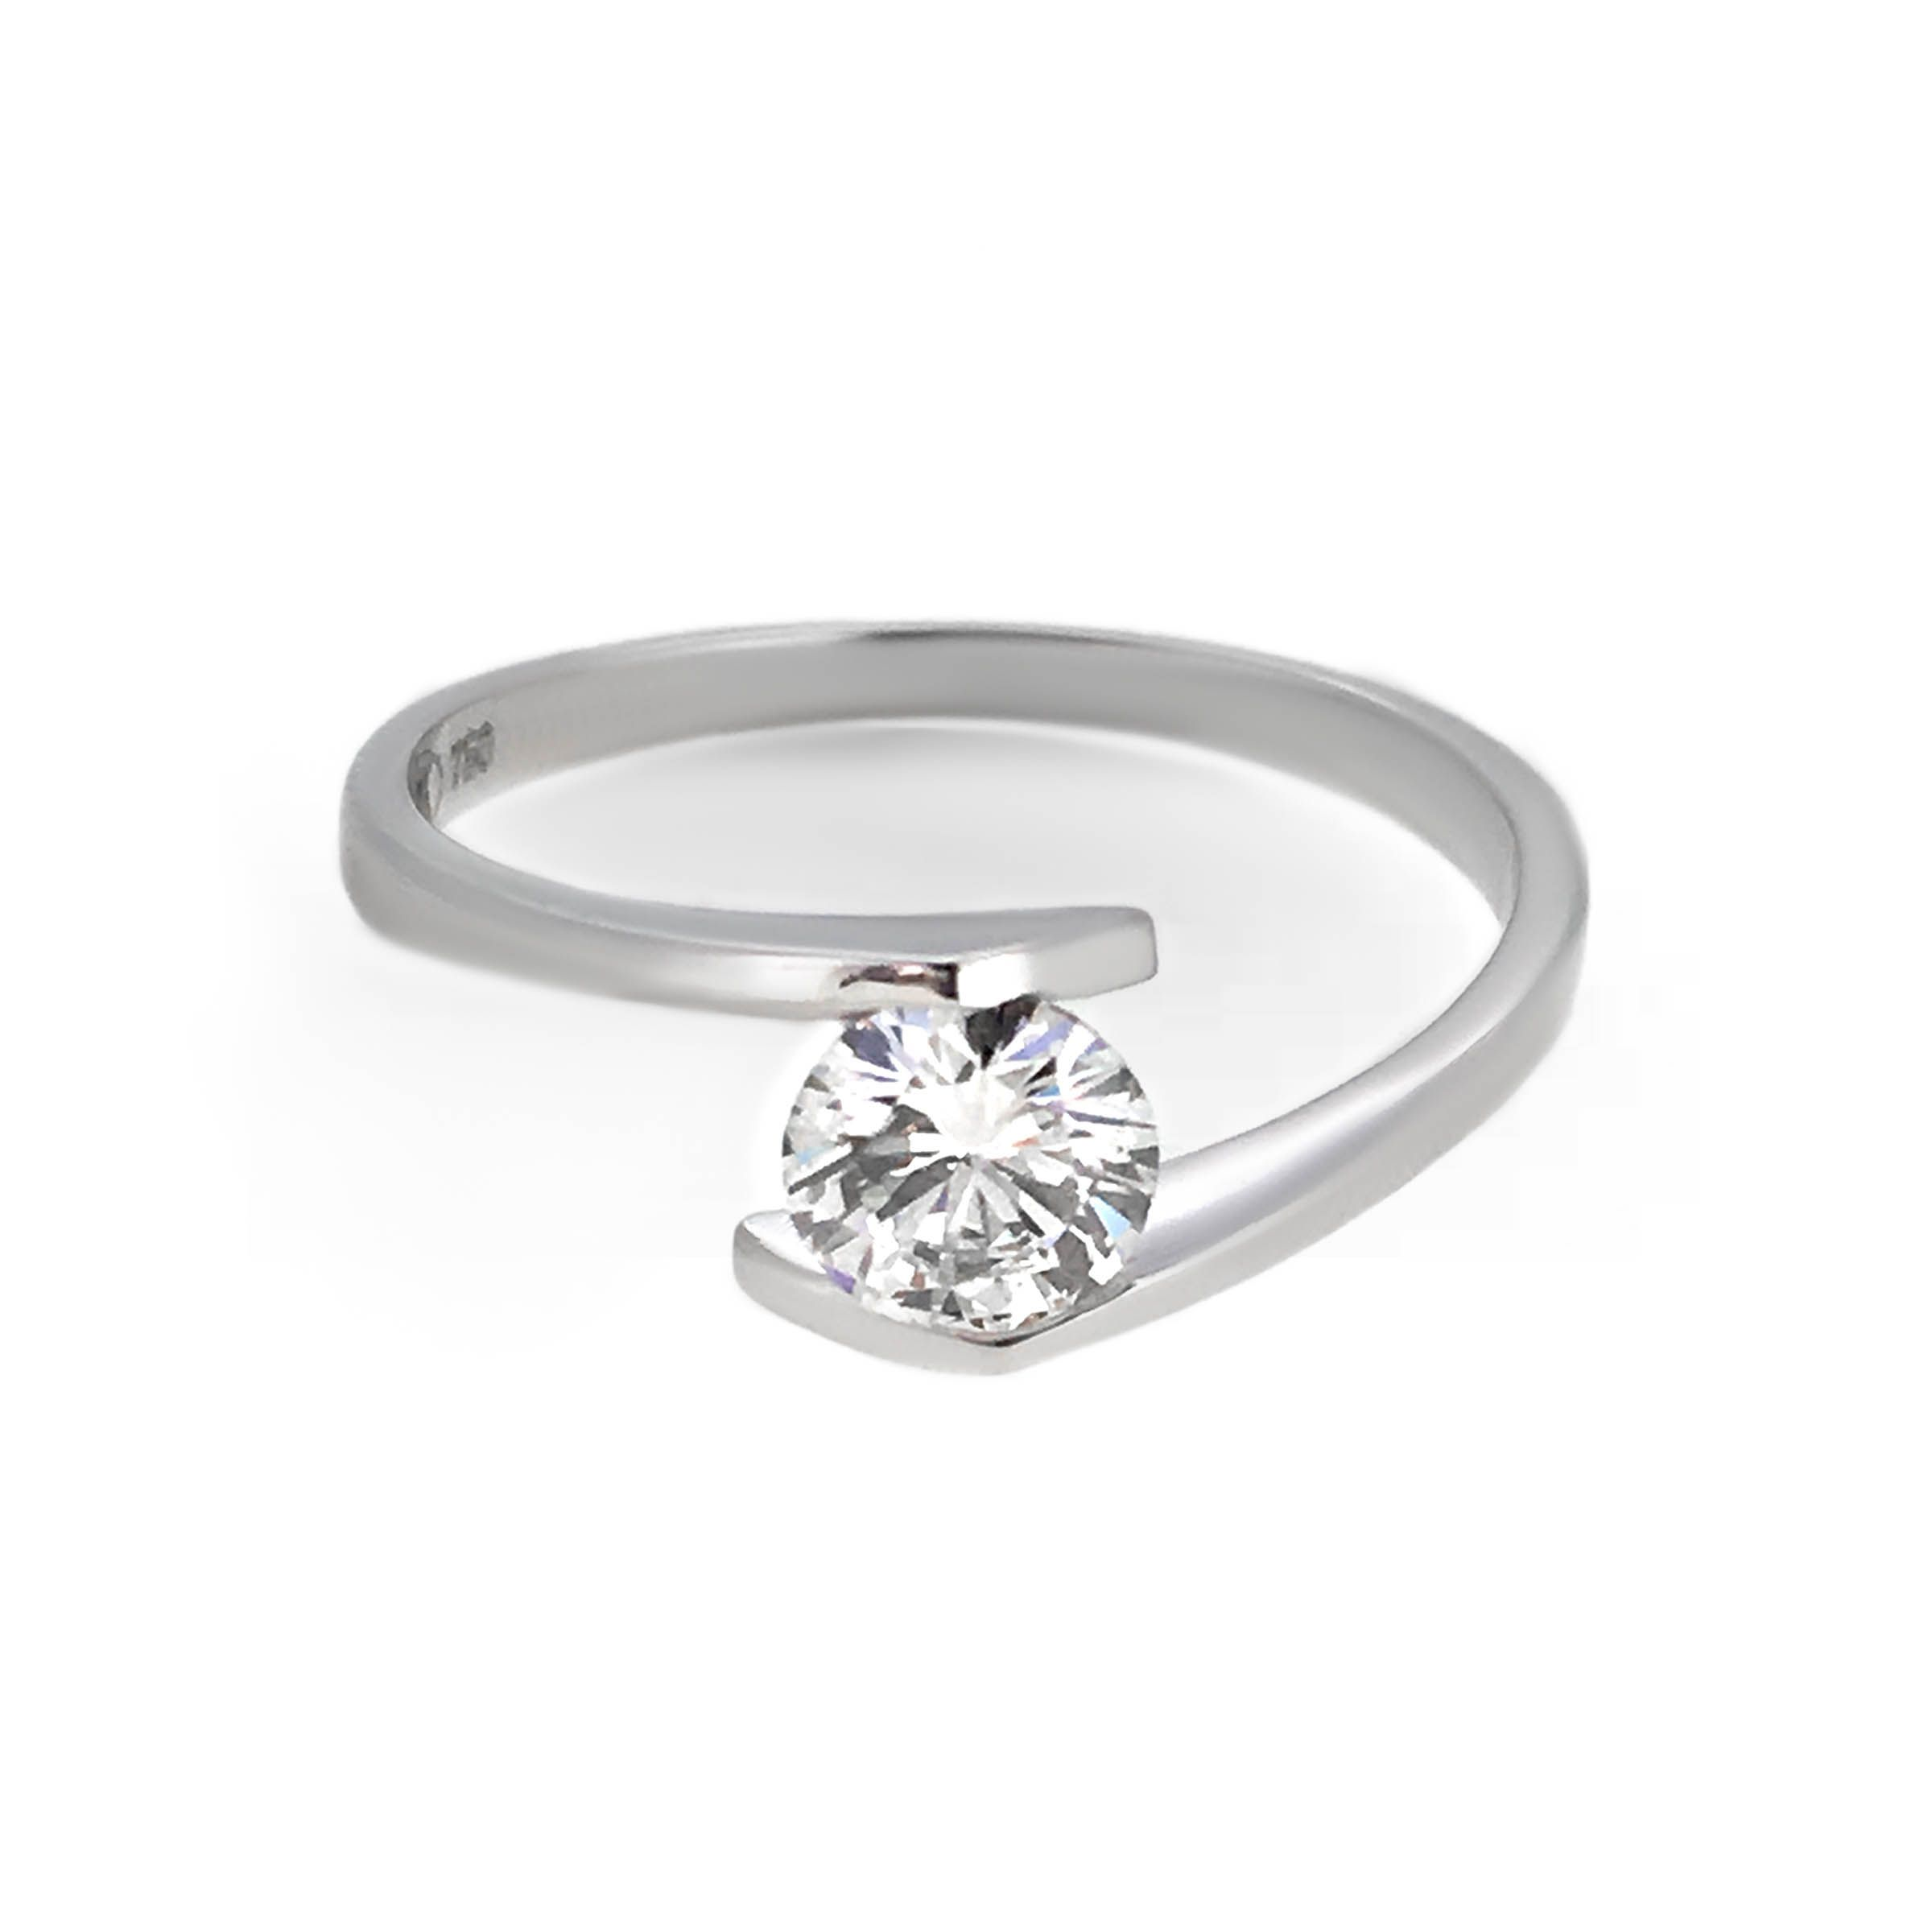 cradles diamond to allow a guides specially jewellery mount now light created pronged four settings through image delicately en its design engagement guide is table forever forevermark setting centre maximum the at ring travel and